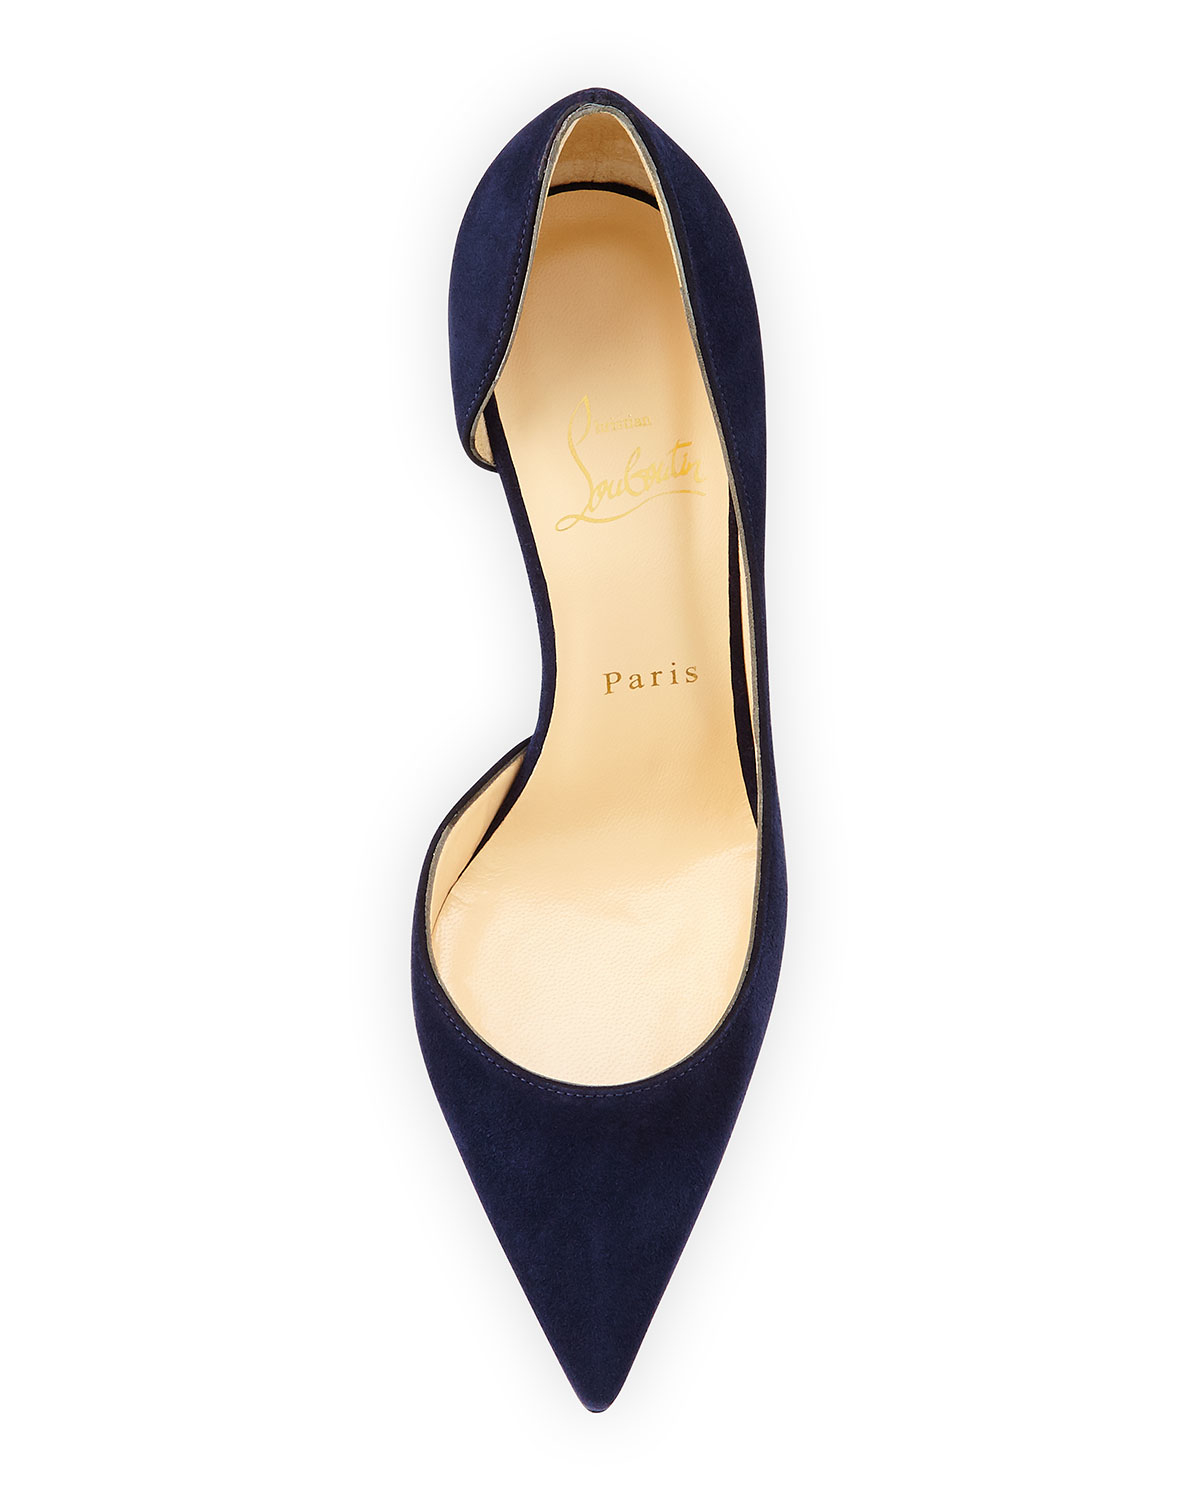 christian louboutins price - Christian louboutin Iriza Half D'Orsay Suede Red Sole Pump in Blue ...